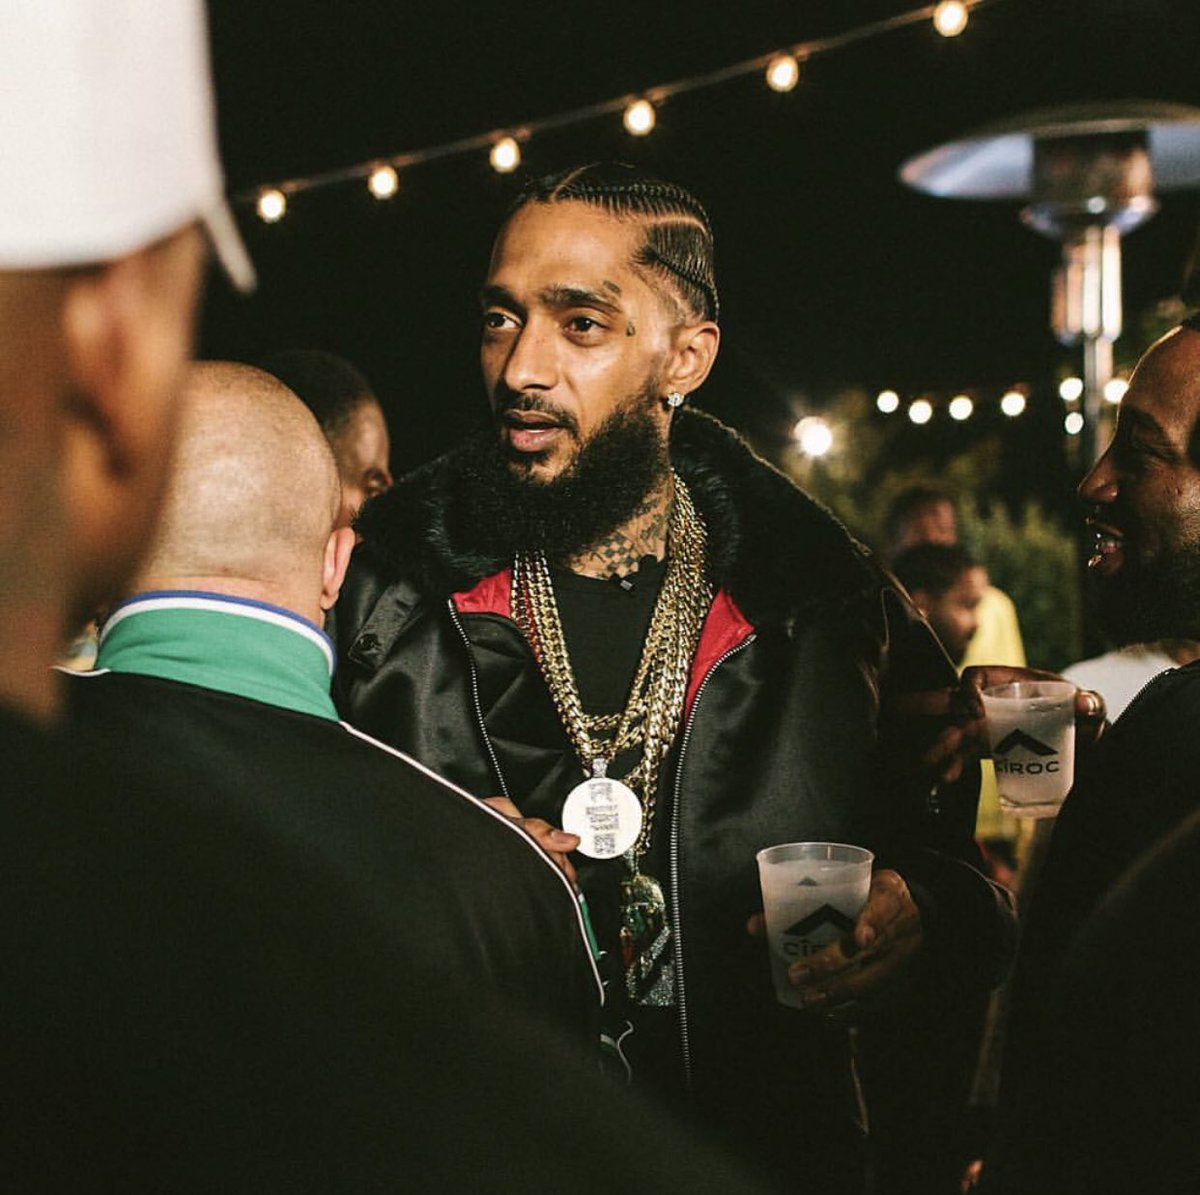 """I'm about seeing long-term, seeing a vision, understanding nothing really worthwhile happens overnight, and just sticking to your script long enough to make something real happen."" - Nipsey Hussle #TMCFOREVER <br>http://pic.twitter.com/RpLnUbwHSN"